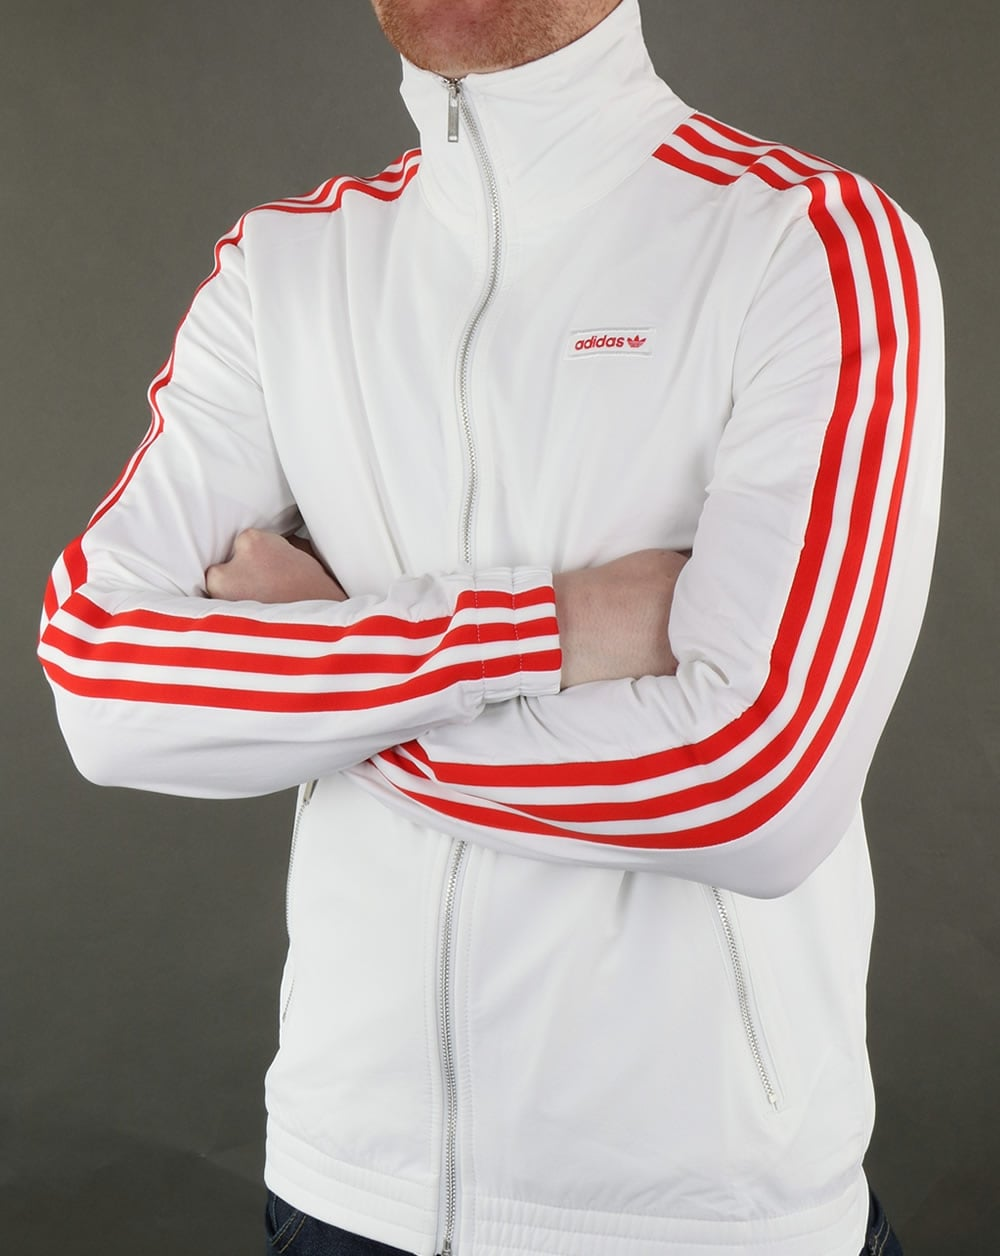 adidas originals mdn track top white men 39 s jacket. Black Bedroom Furniture Sets. Home Design Ideas